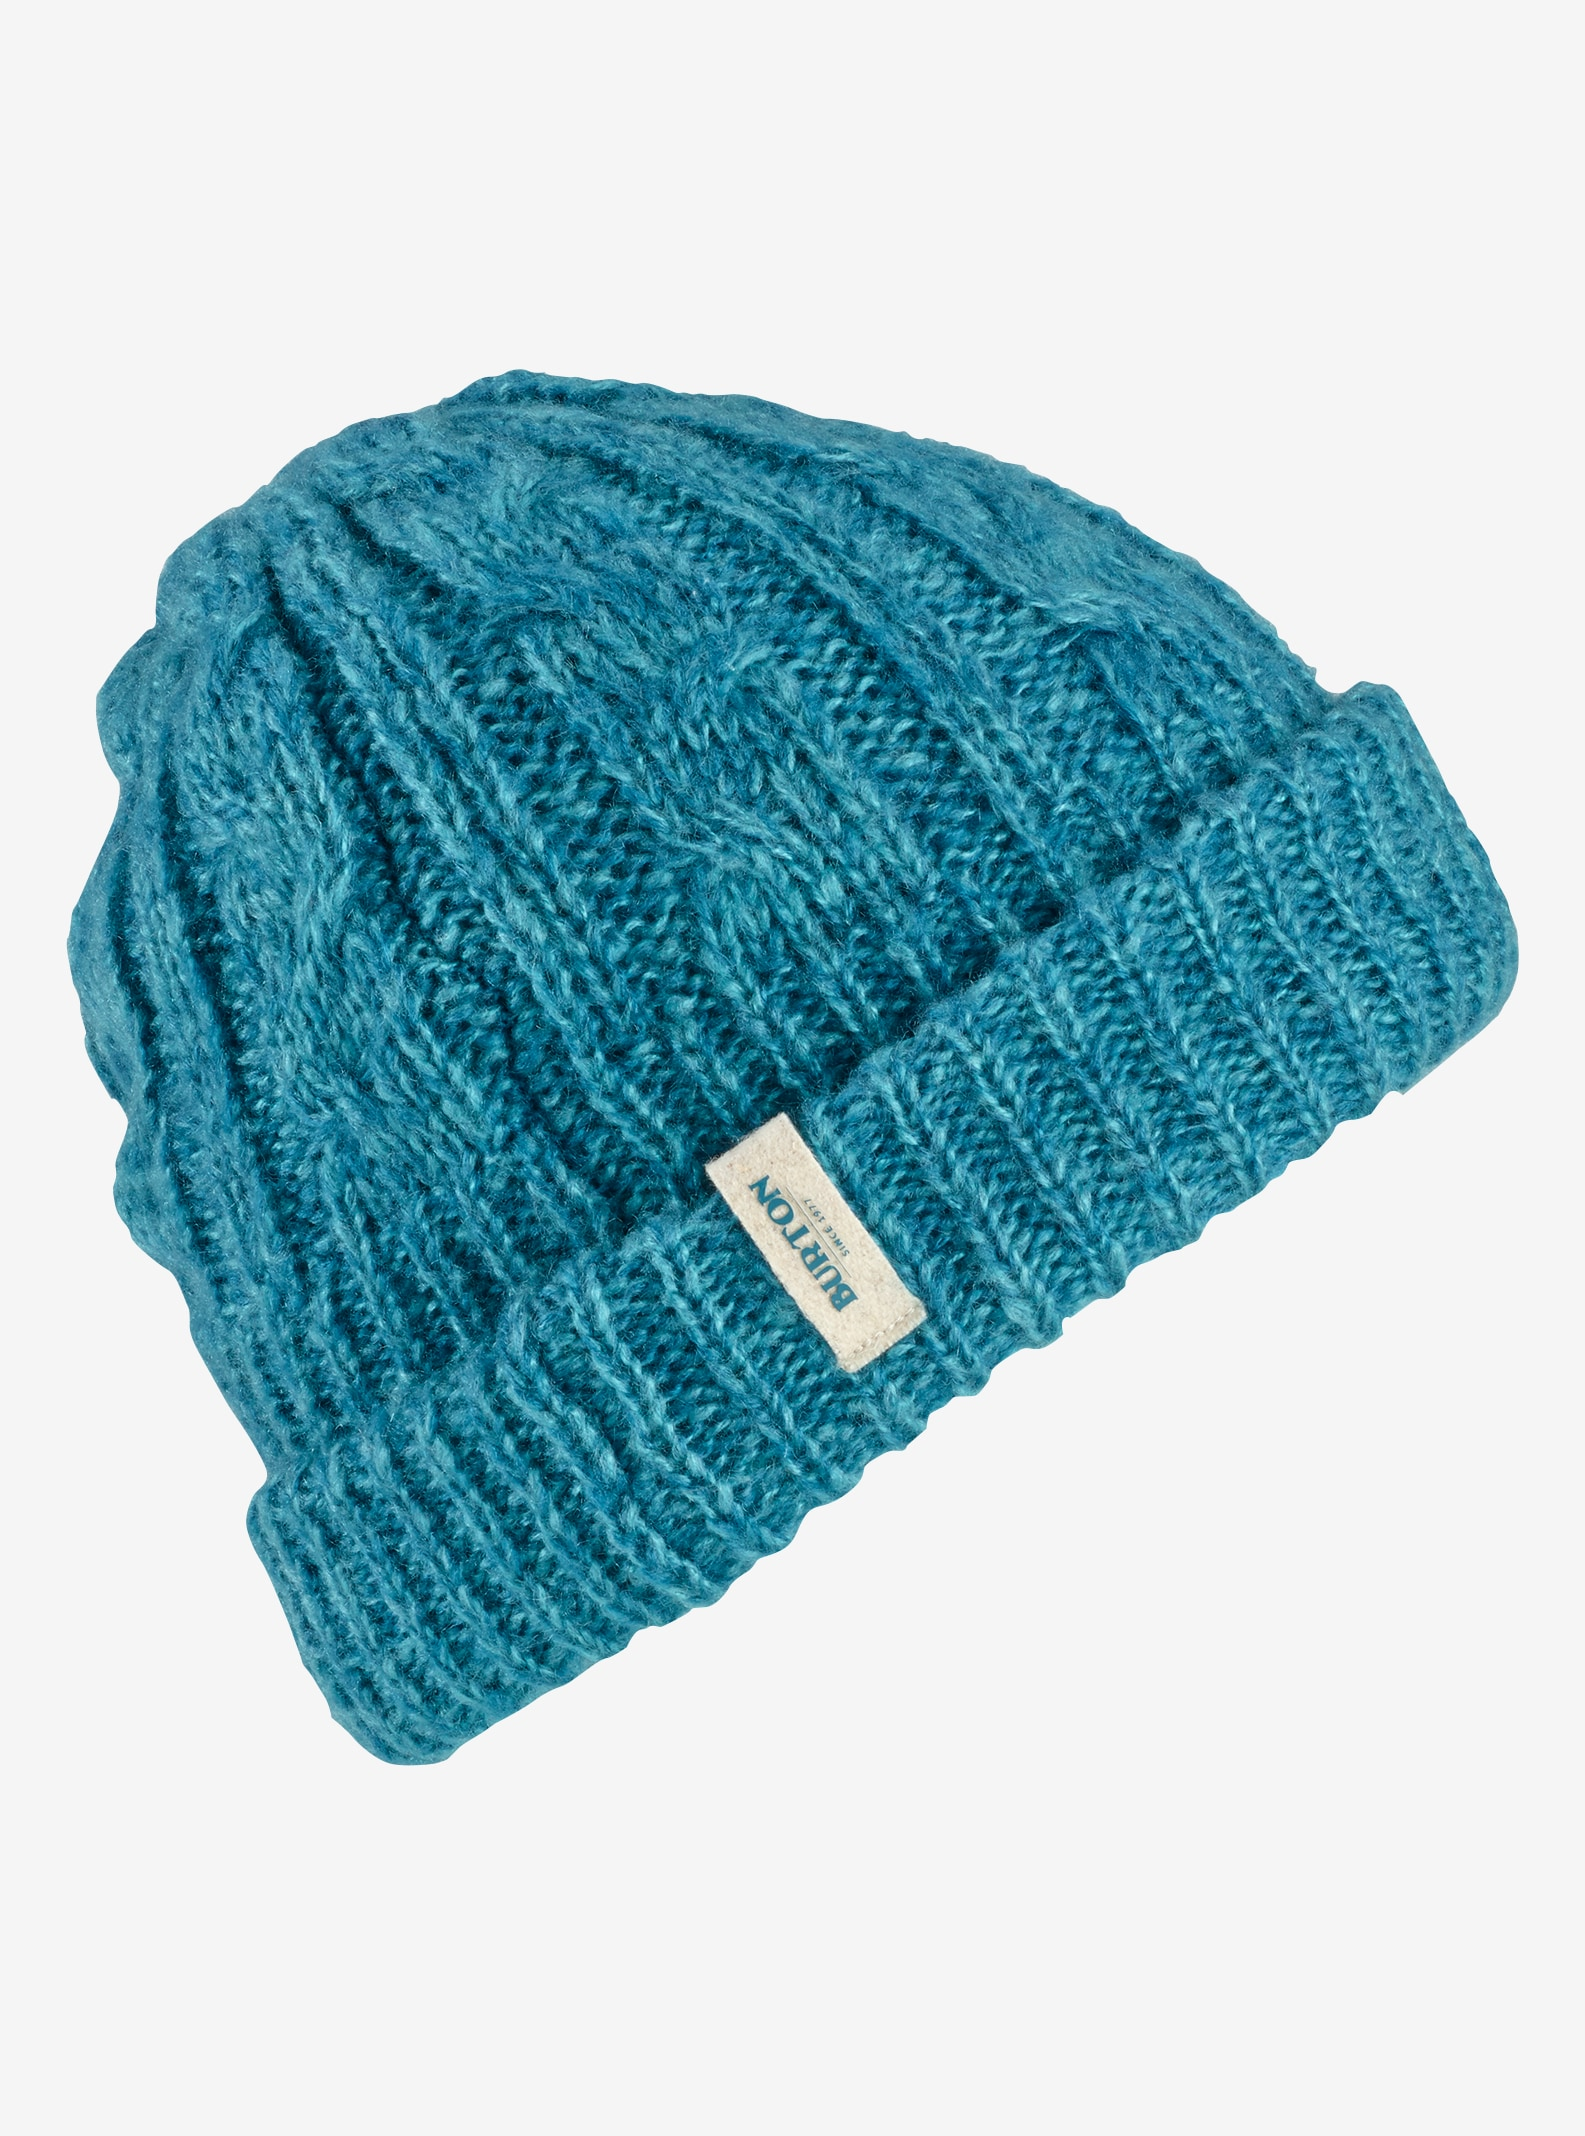 Women's Burton Bone Cobra Beanie - Reversible shown in Larkspur / Jaded